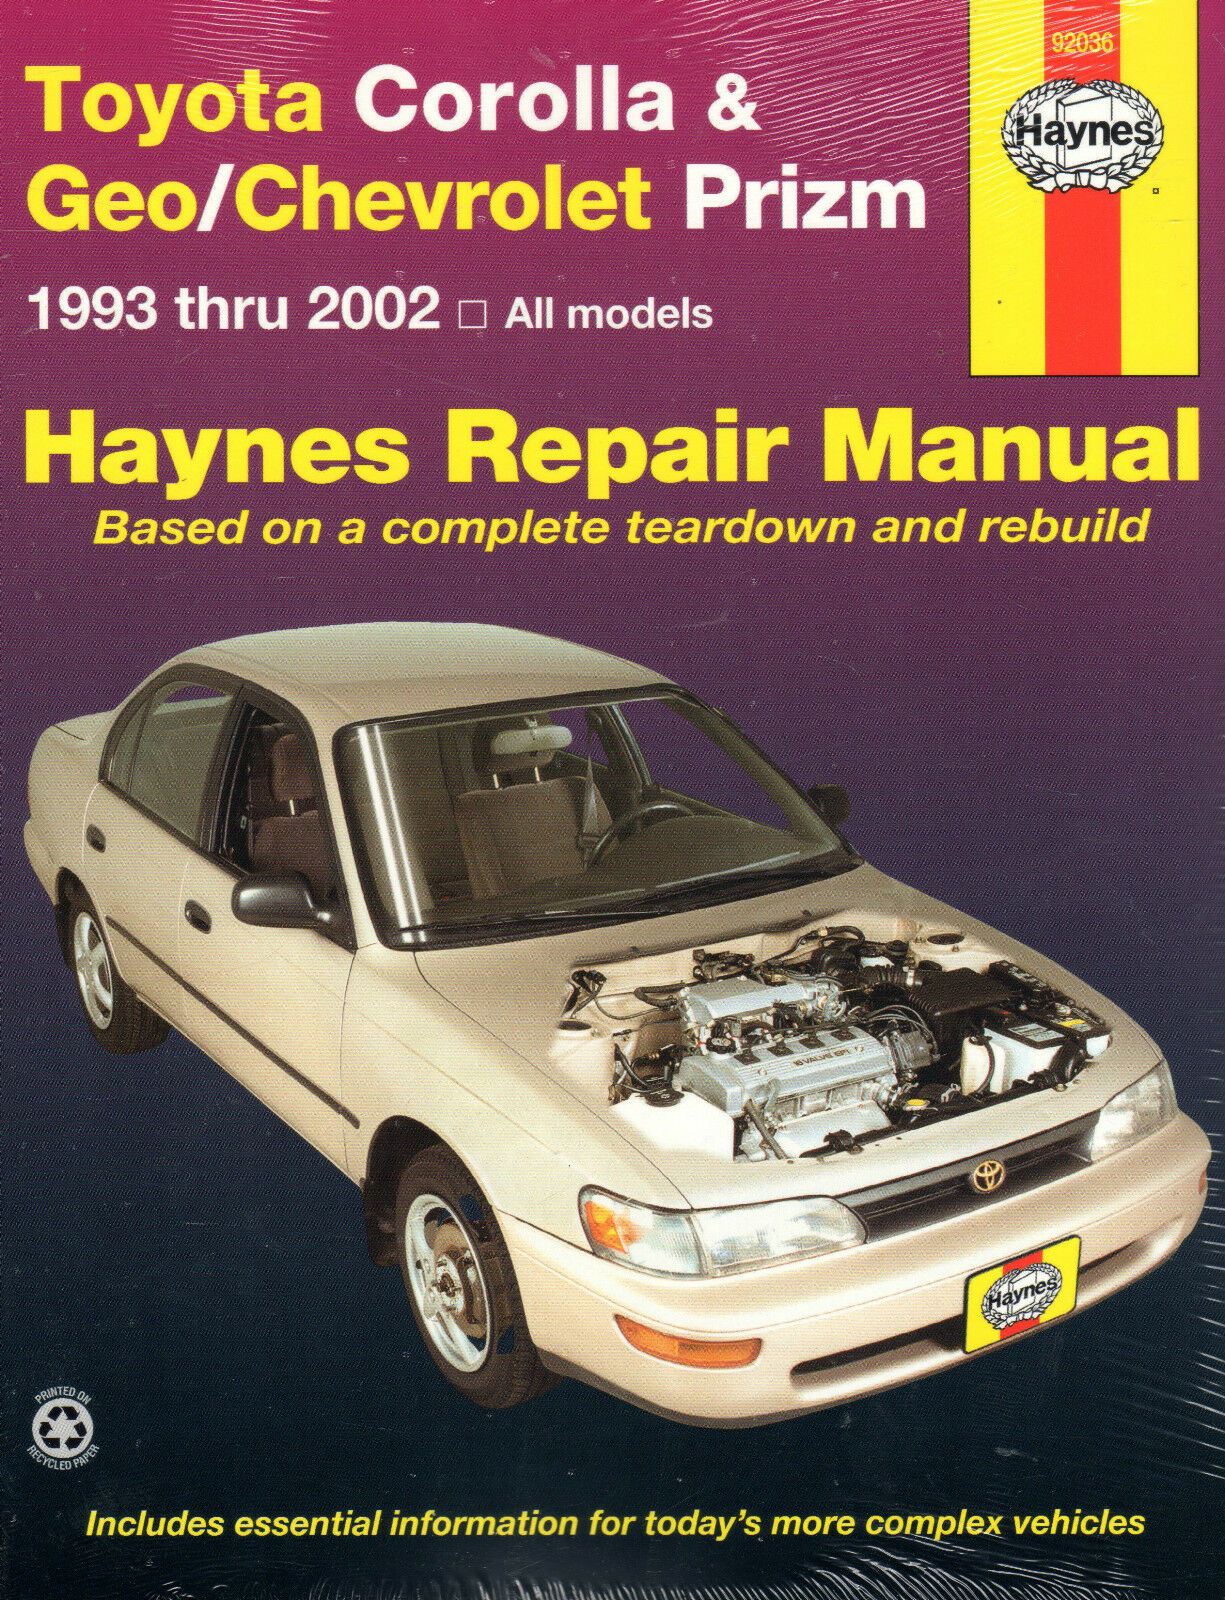 Haynes Manuals: Toyota Corolla and Geo/Chevrolet Prizm 1993 Thru 2002 by  John Haynes and Jay Storer (2002, Paperback) | eBay